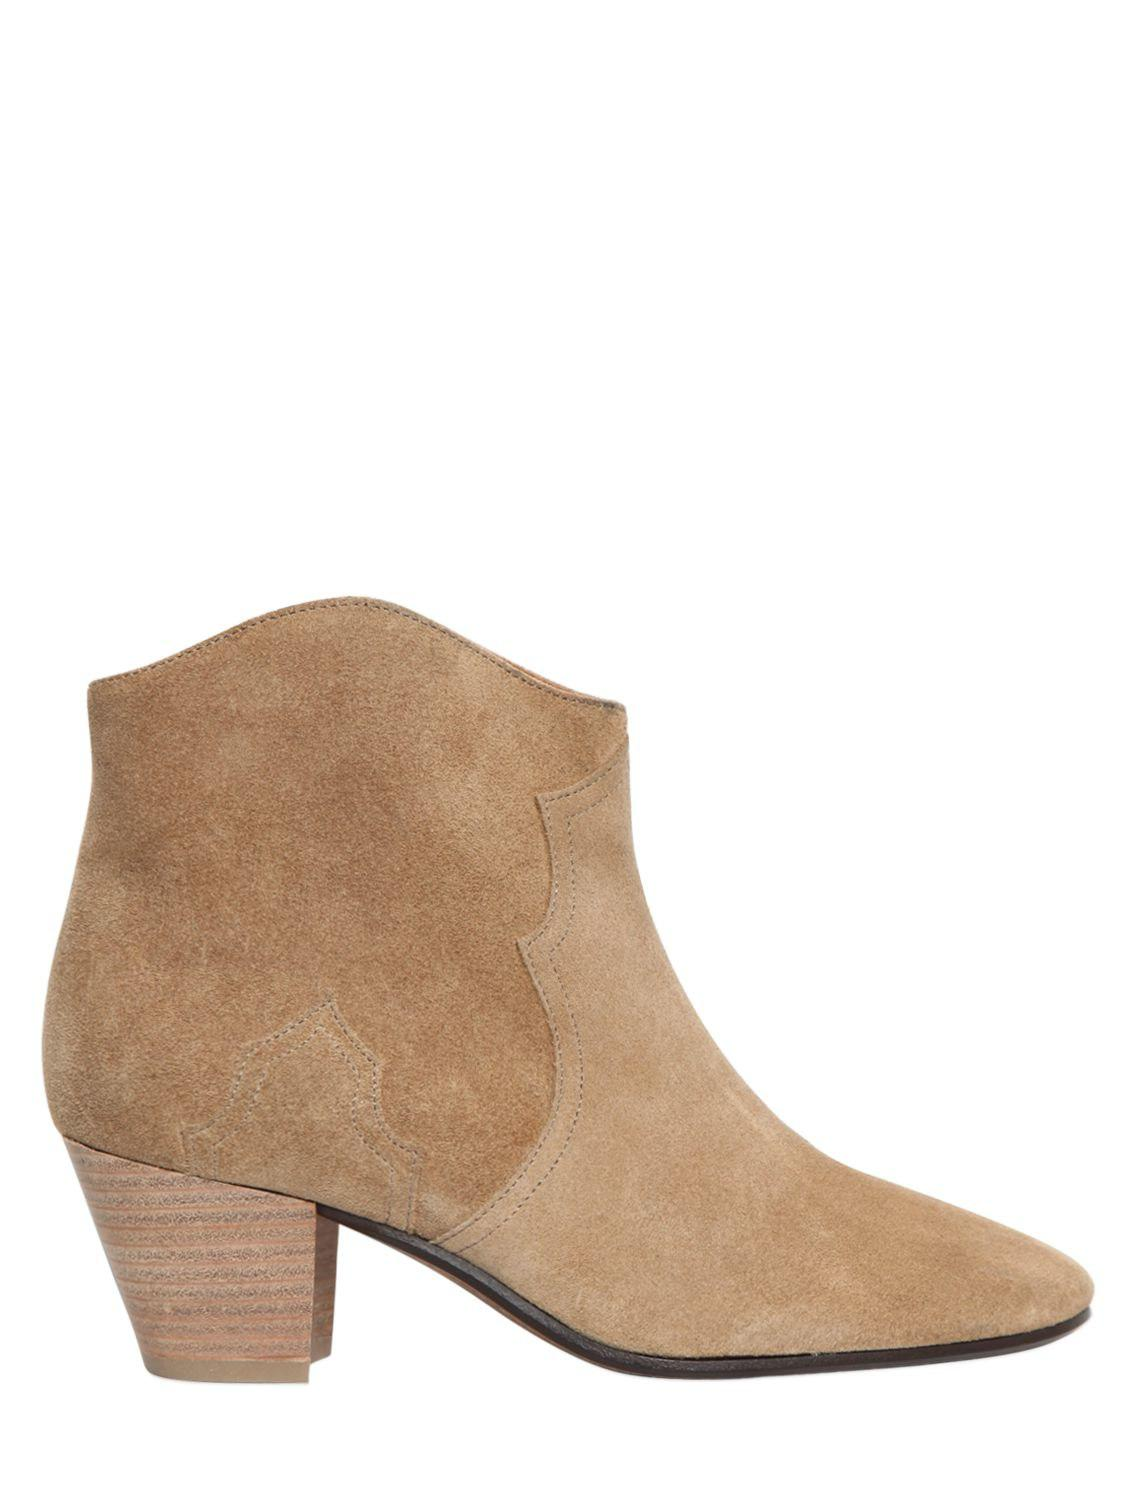 Isabel Marant 50MM DICKER SUEDE BOOTS Discounts For Sale 0fCPovI